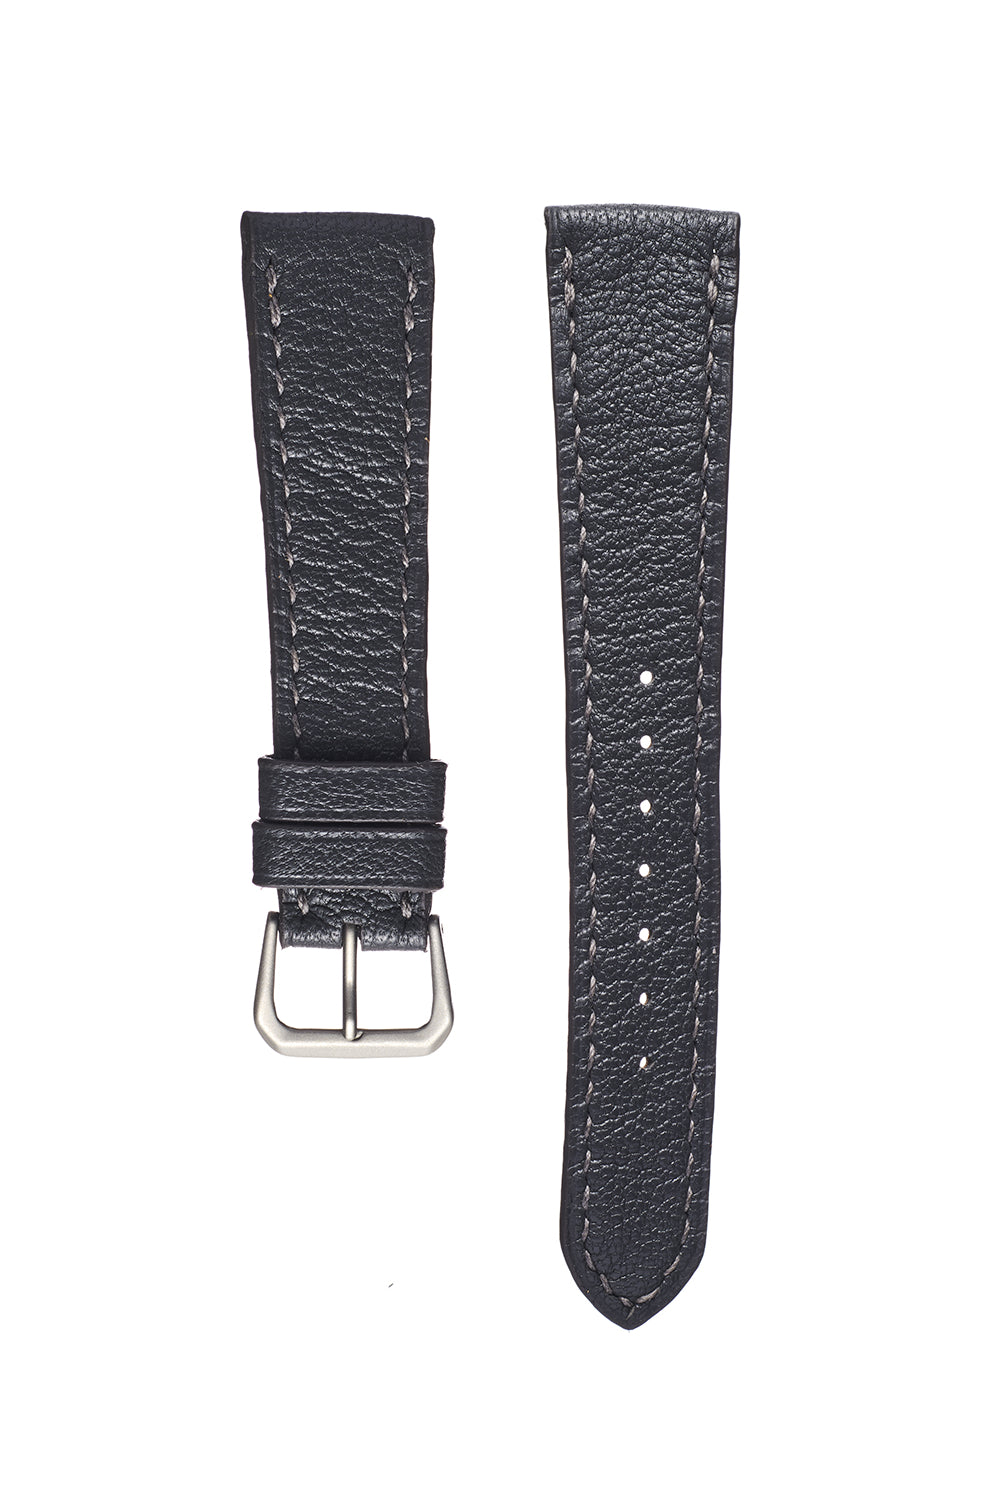 Slate Gray Goatskin Watch Strap - David Lane Design